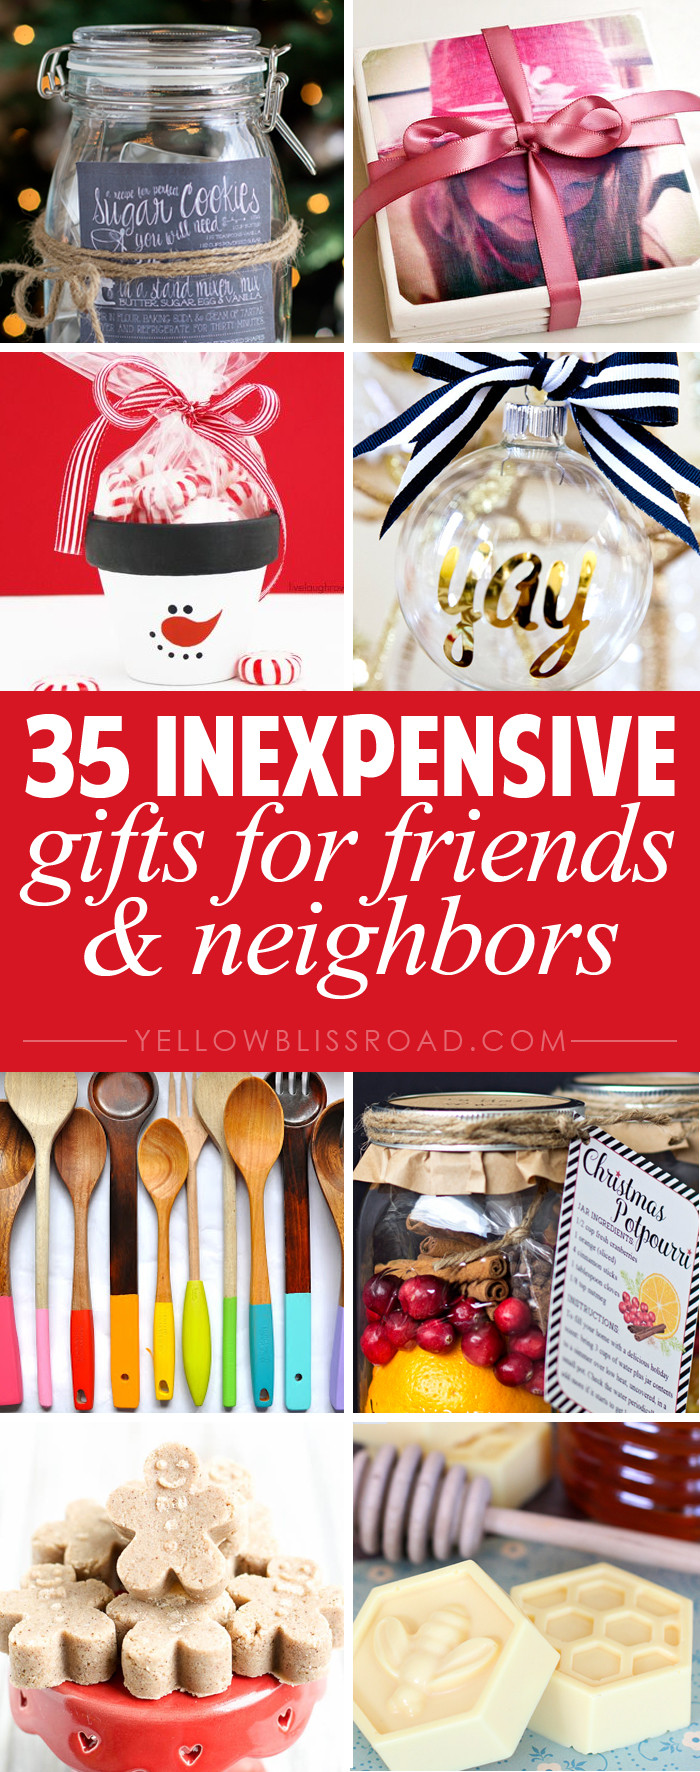 Best ideas about Holiday Gift Ideas For Friends . Save or Pin 35 Gift Ideas for Neighbors and Friends Yellow Bliss Road Now.